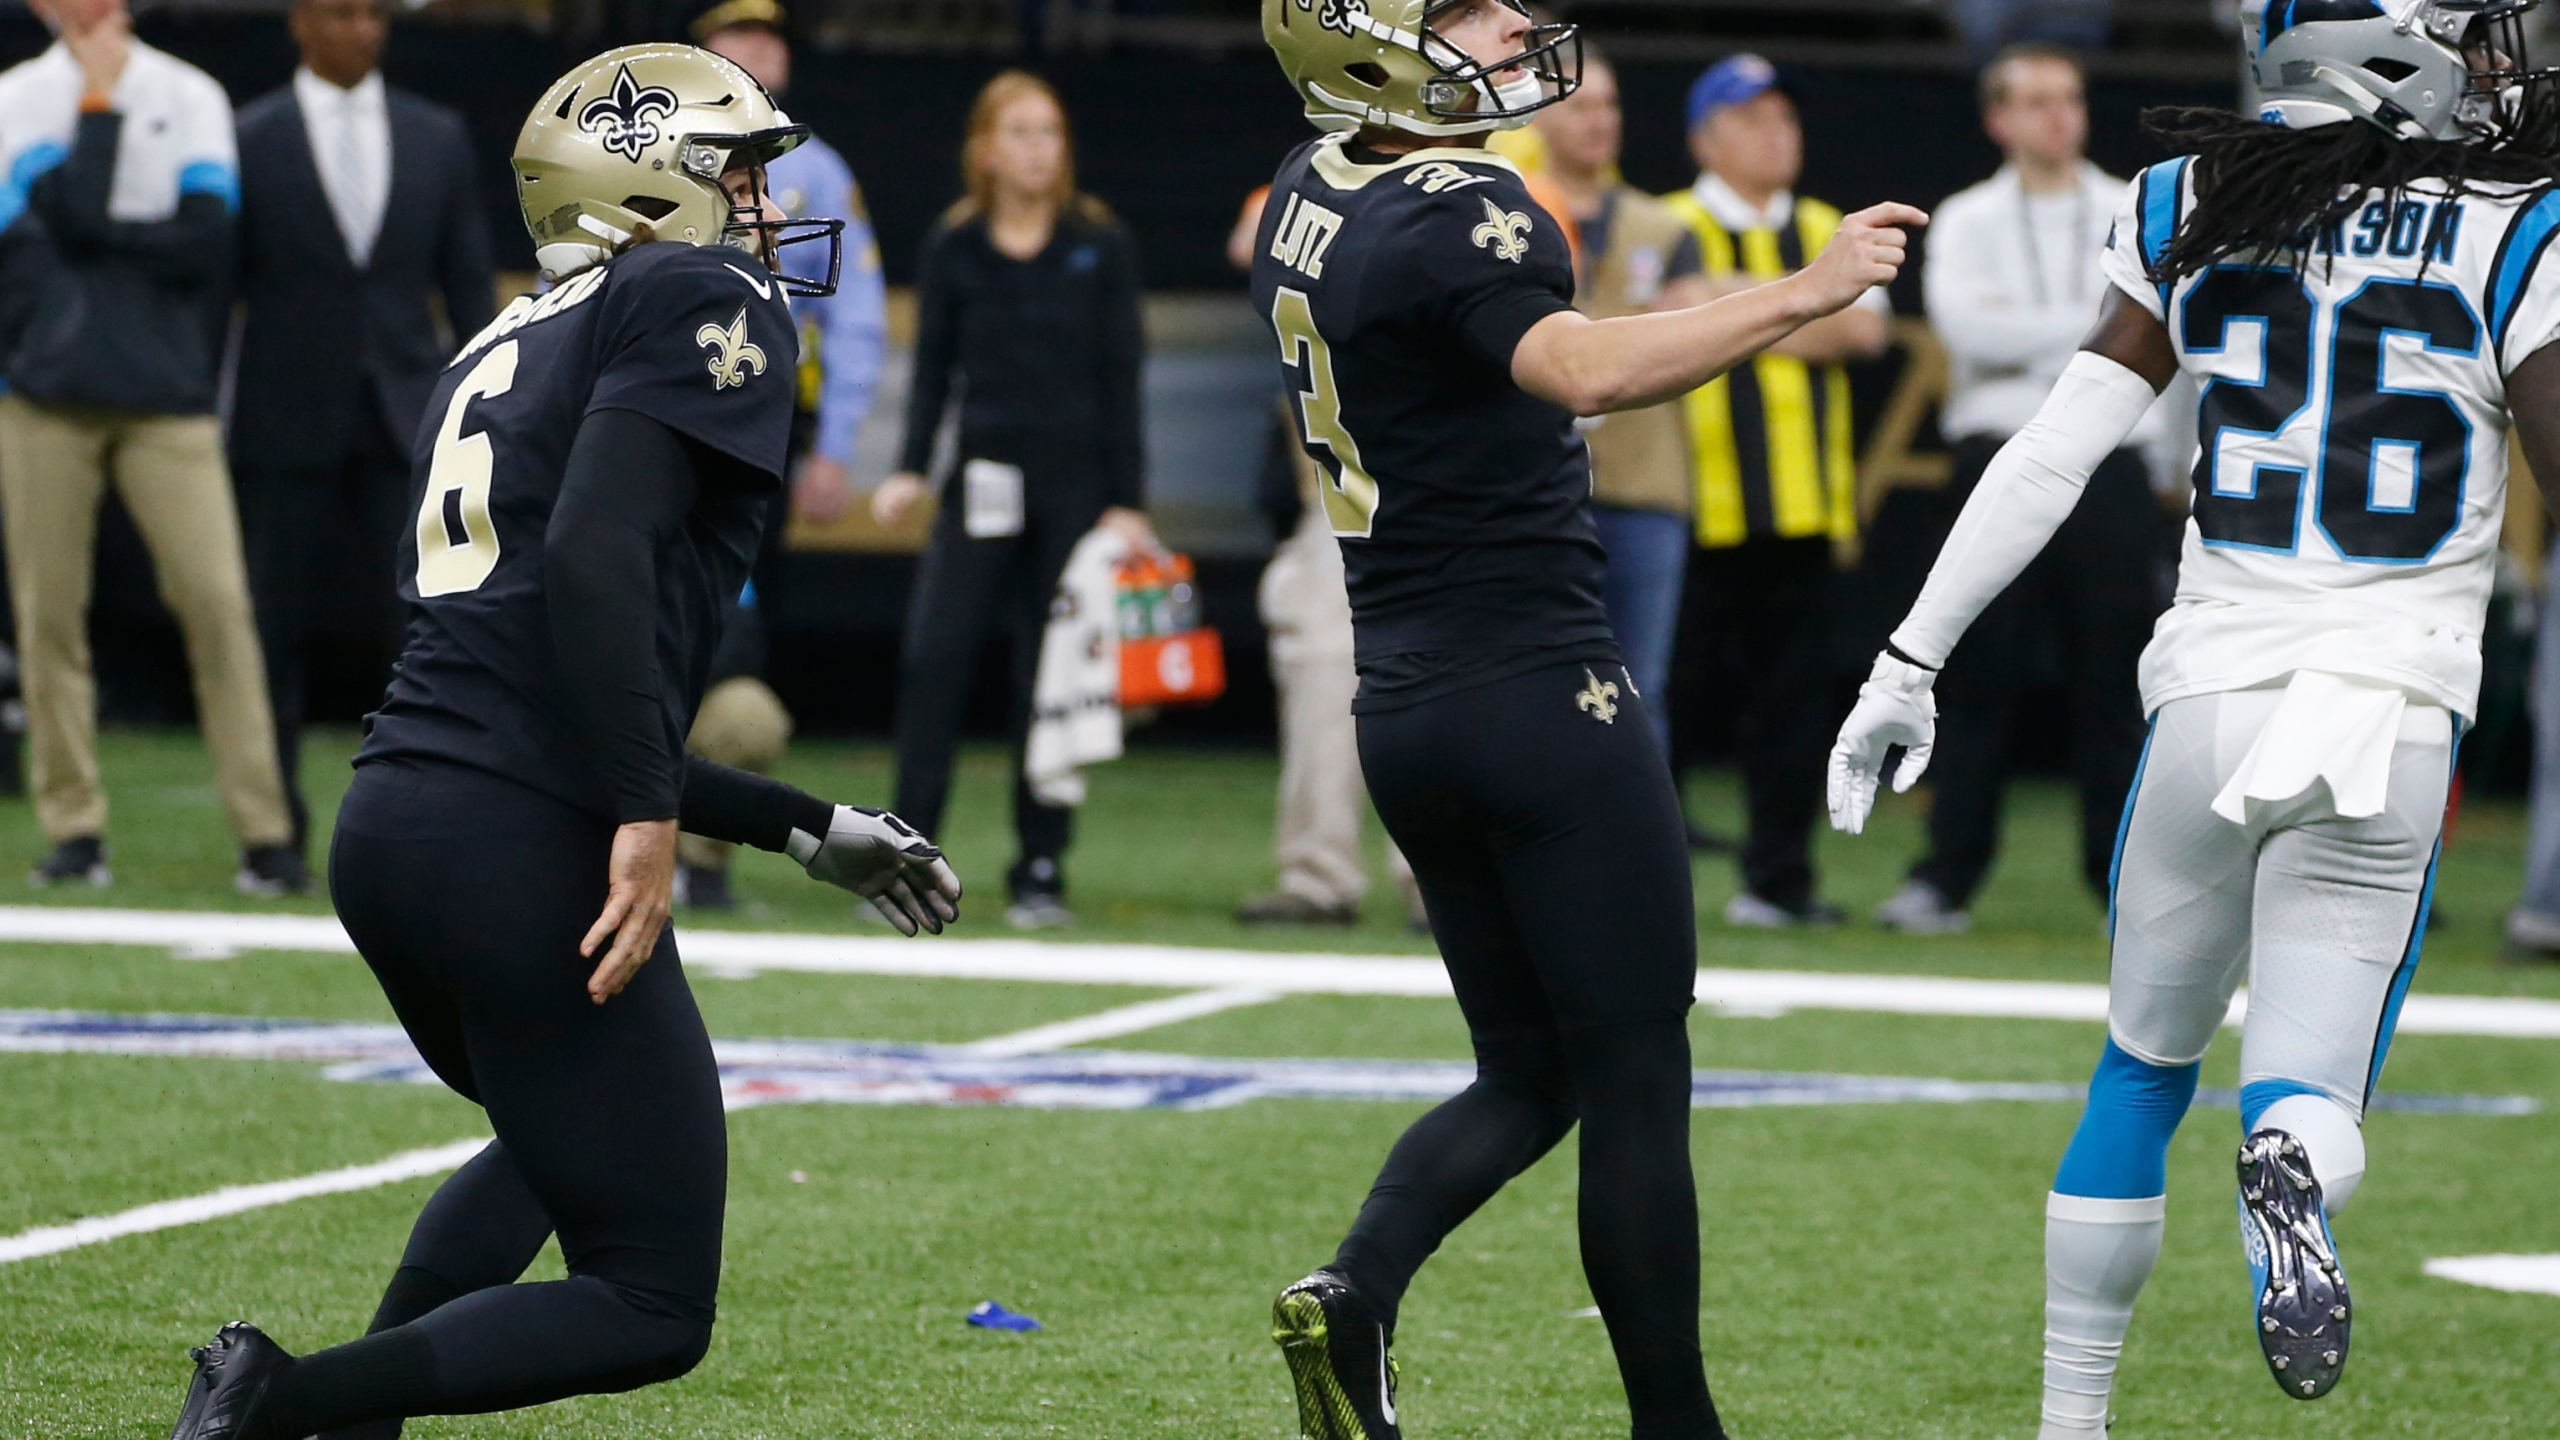 Lutz S Kick Lifts Saints To Dramatic 34 31 Win Over Panthers